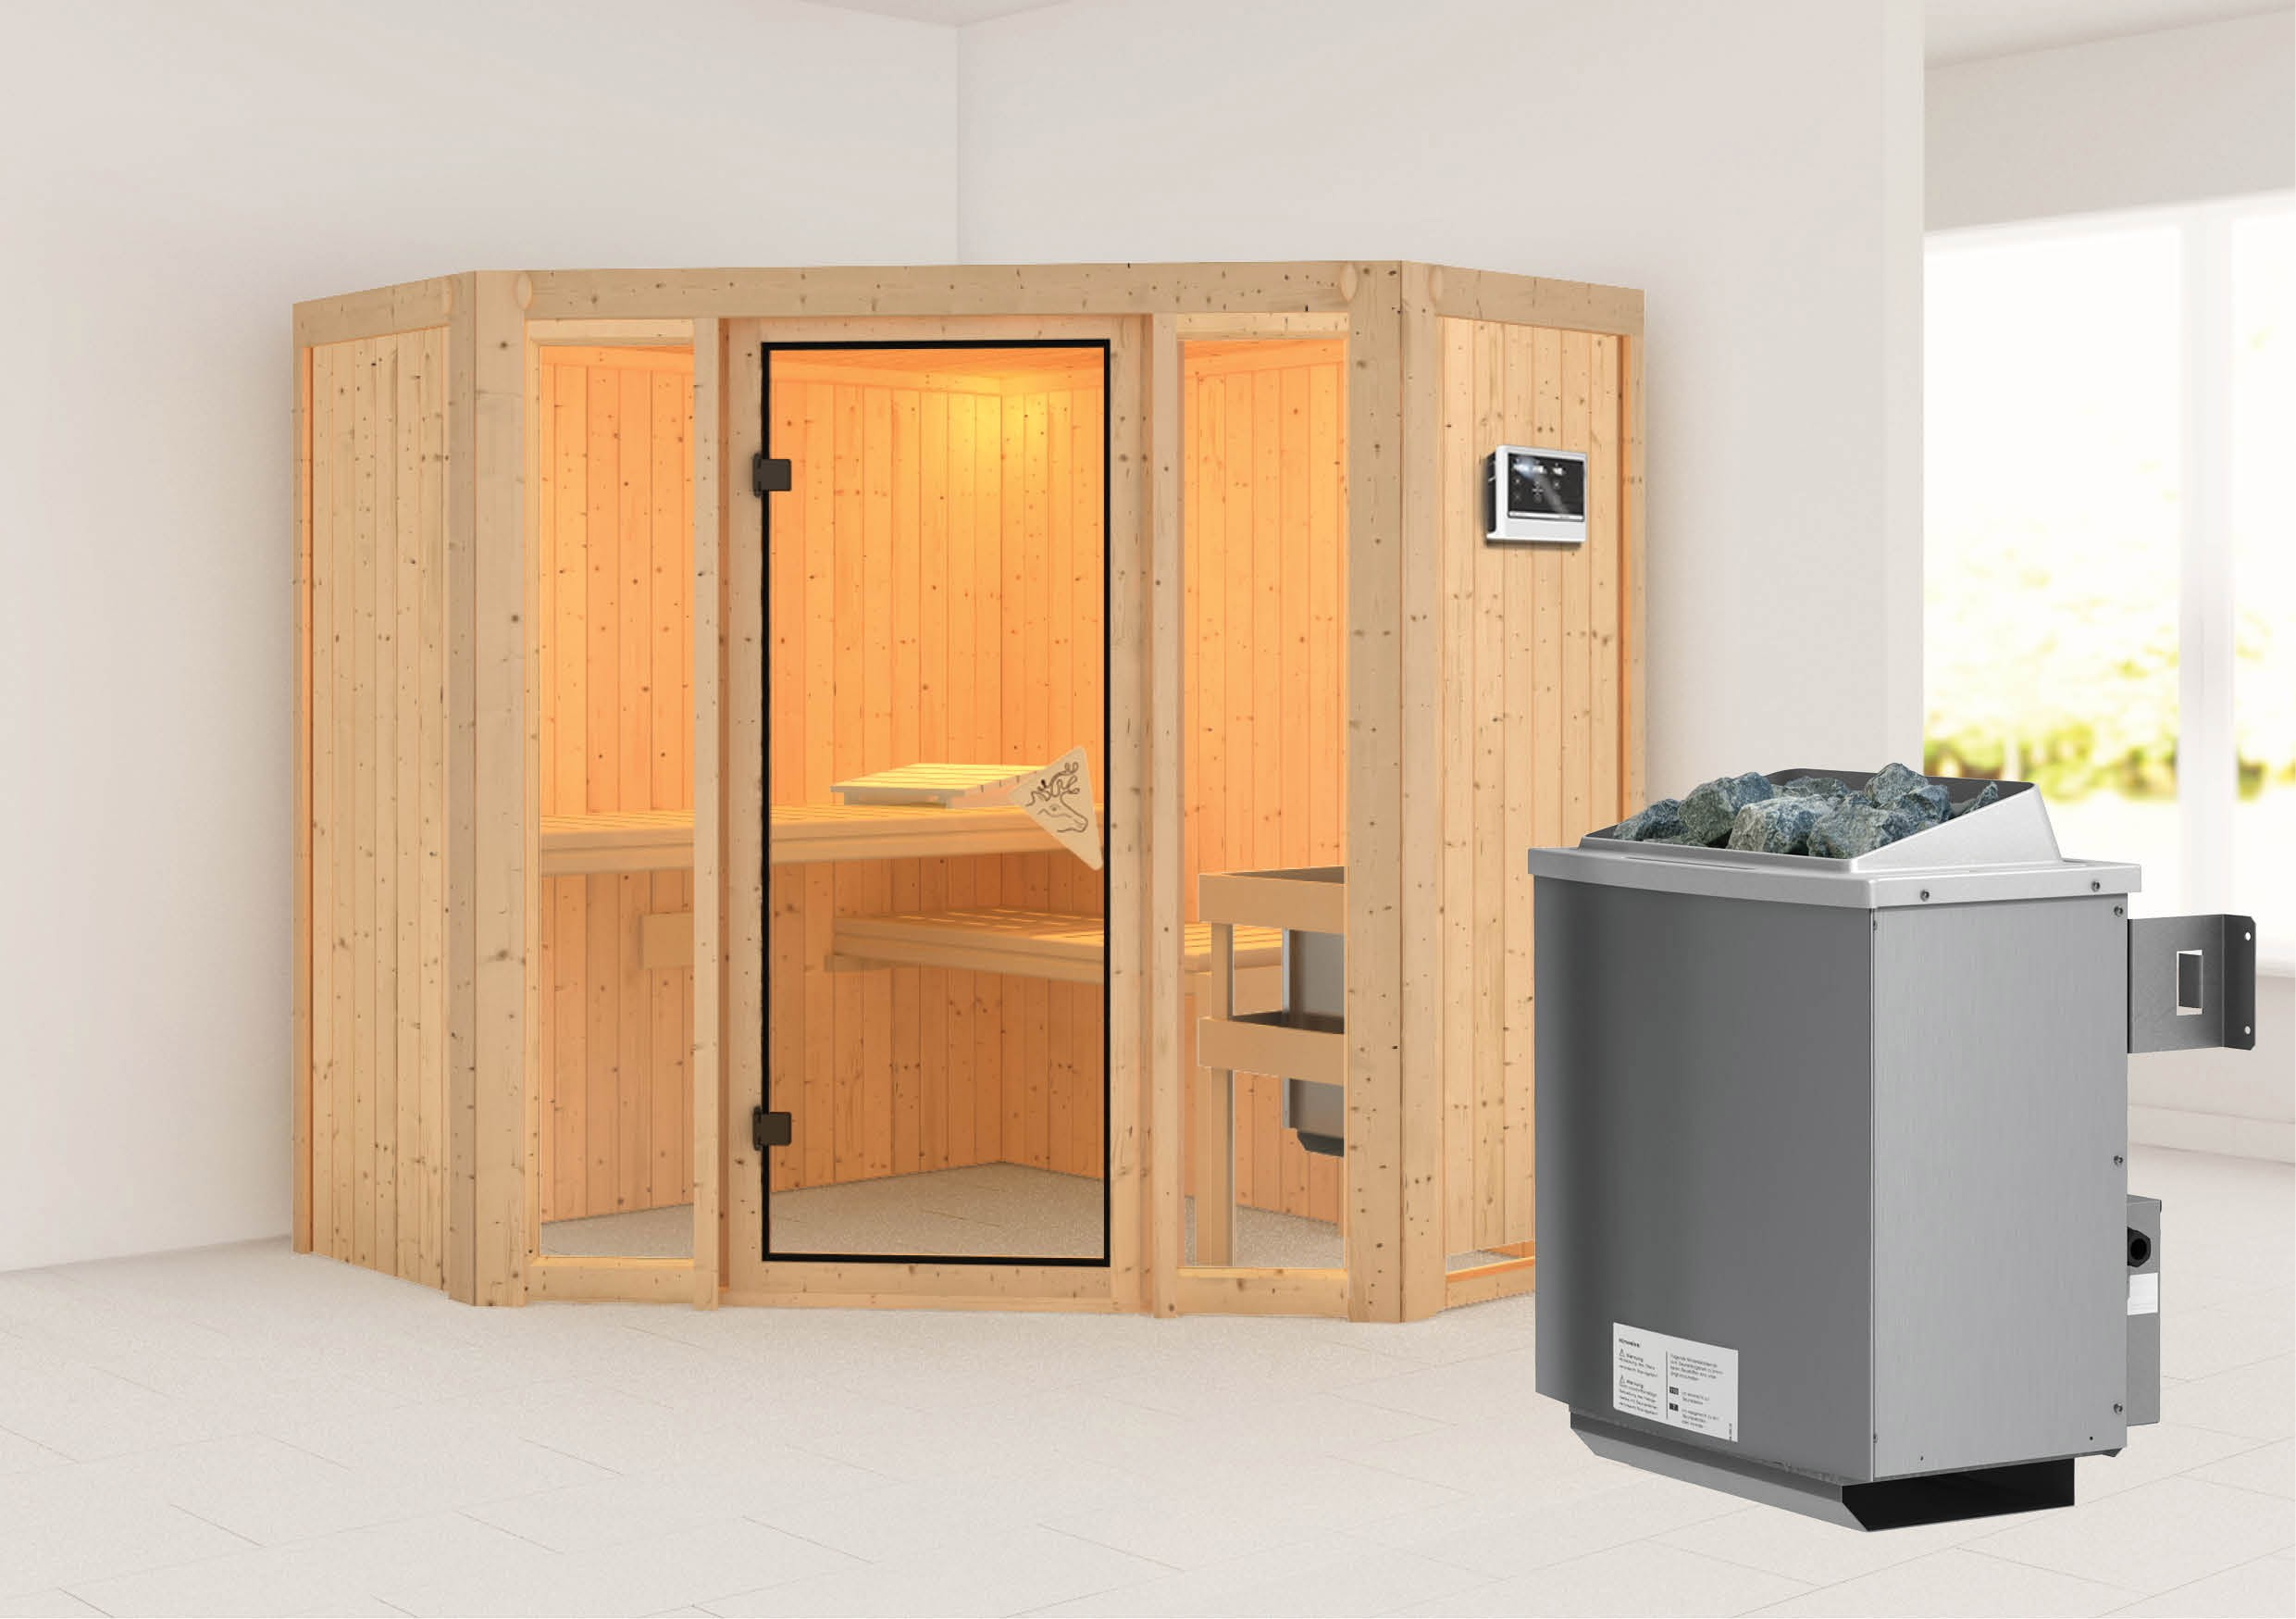 karibu sauna flora1 68mm mit ofen 9kw extern classic t r bild 1. Black Bedroom Furniture Sets. Home Design Ideas